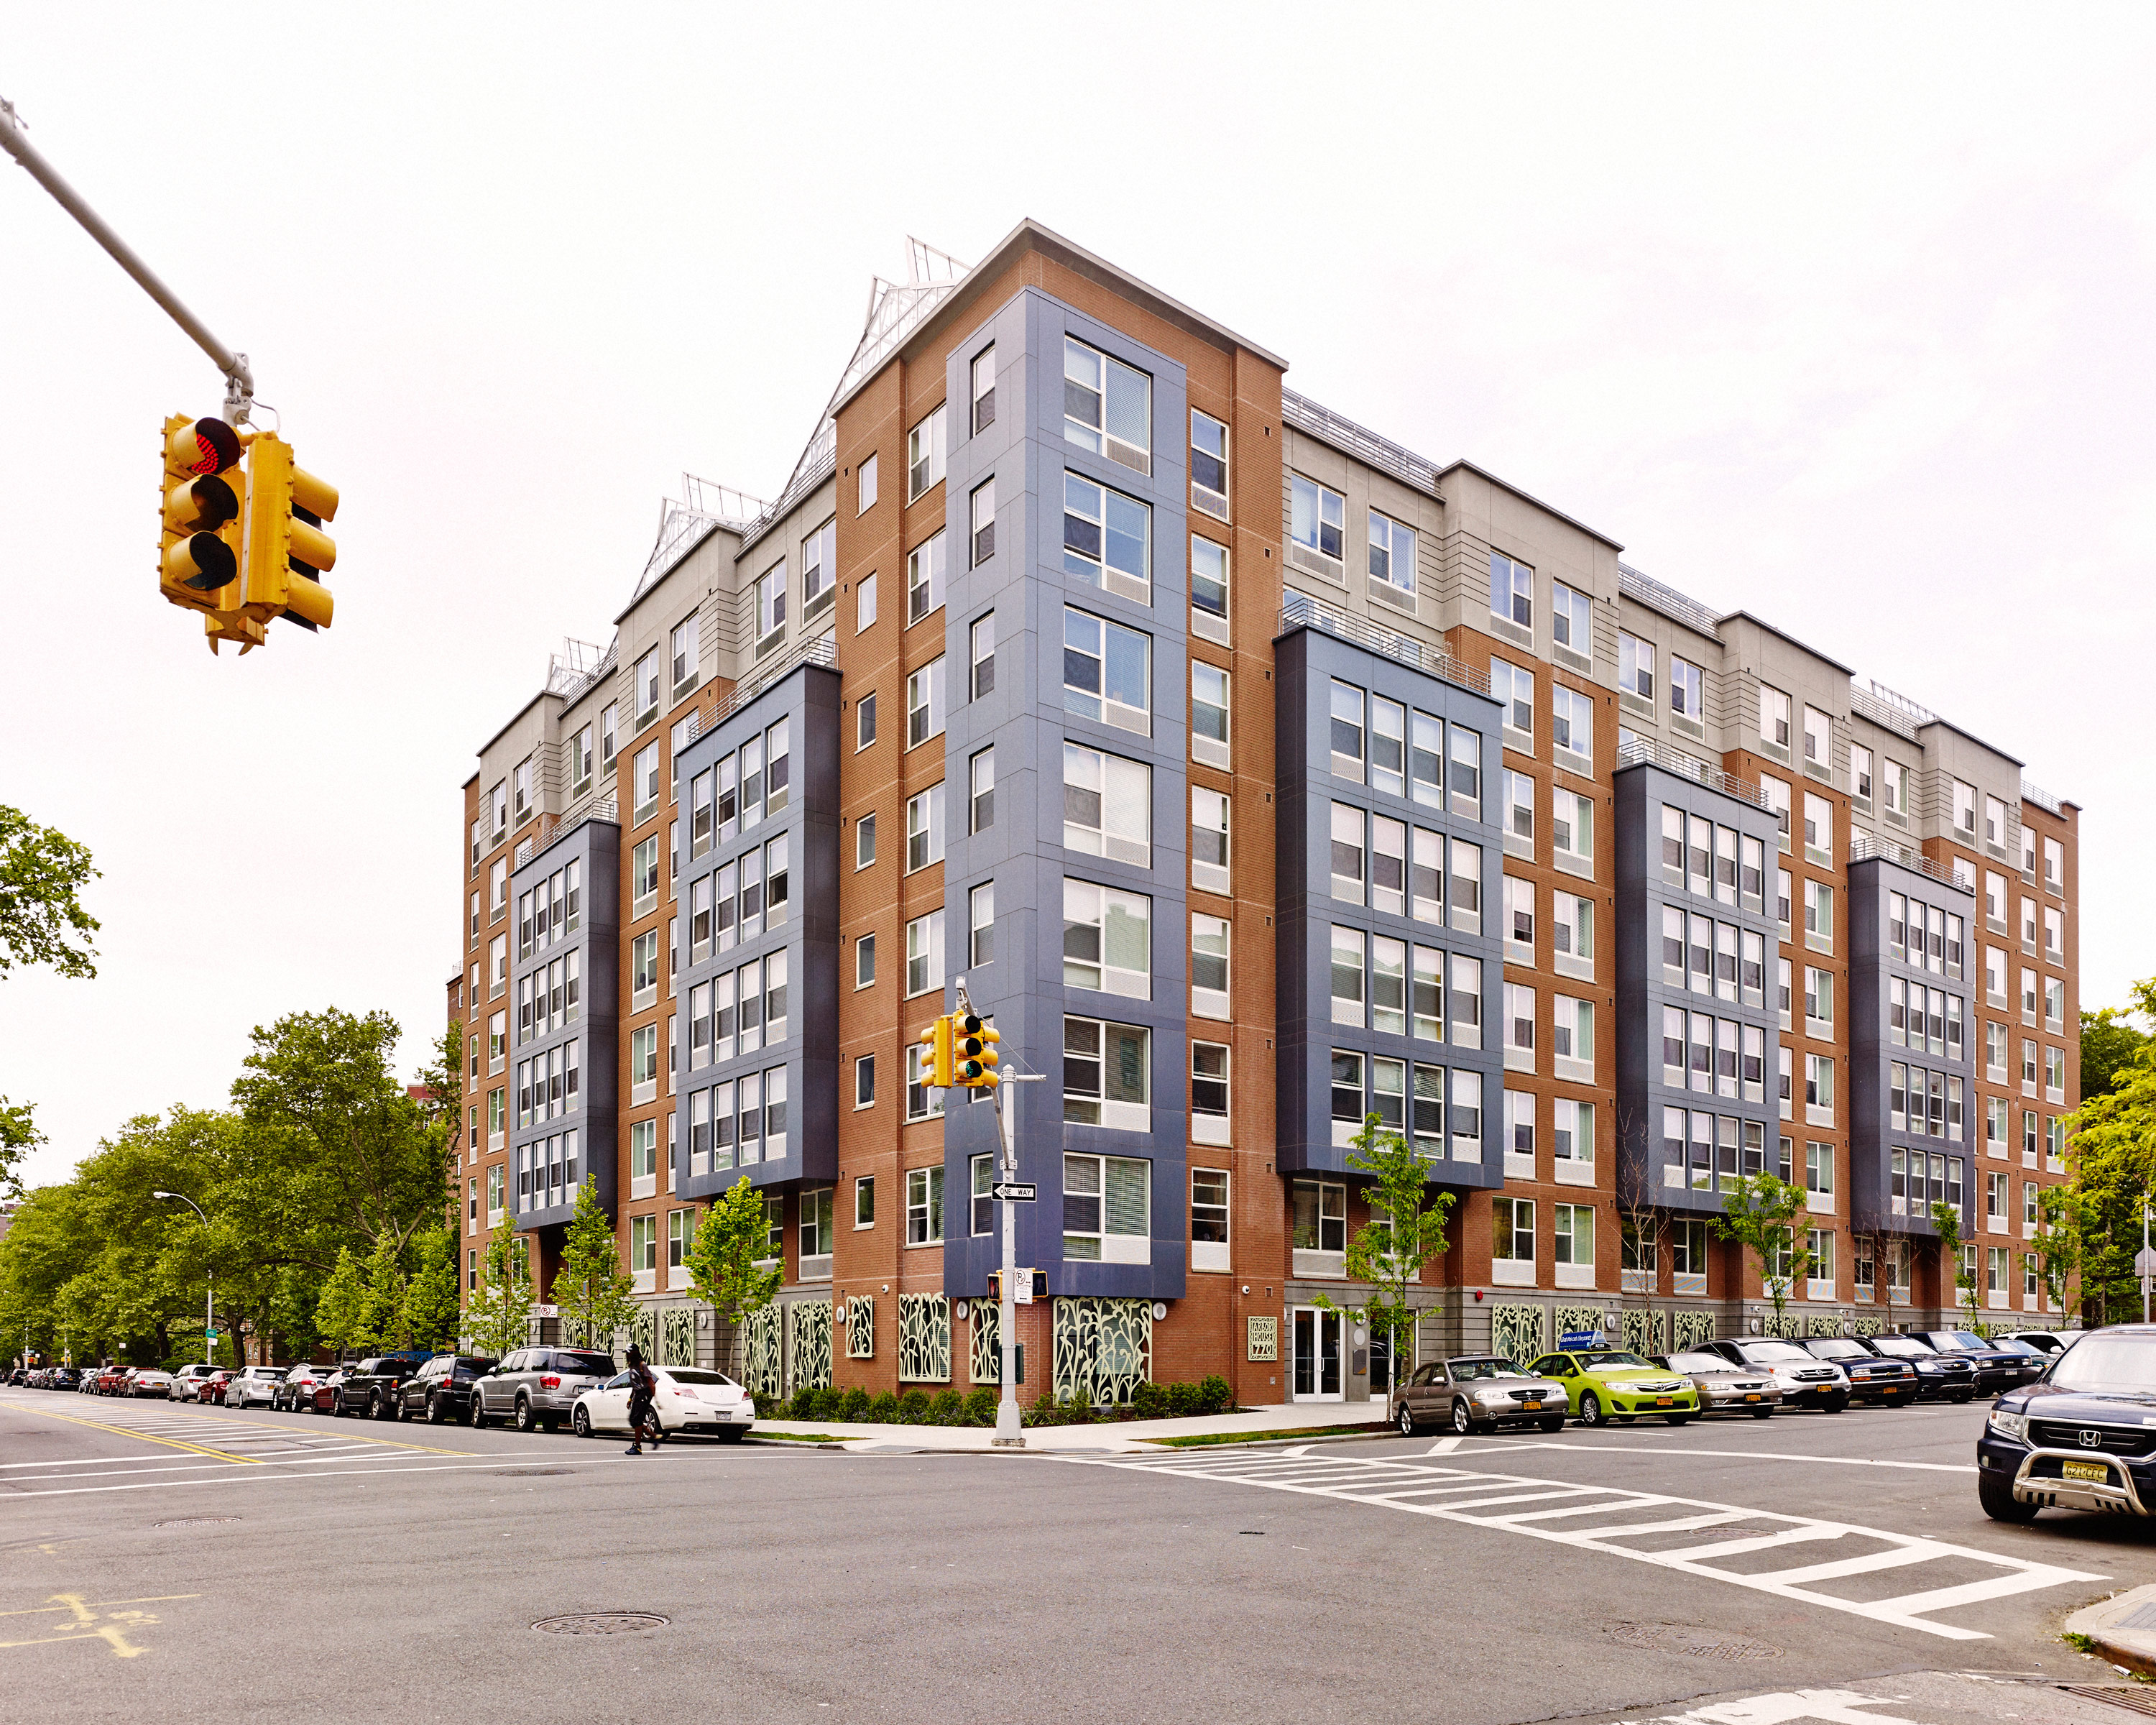 Arbor House, a $37.7 million, 120,000-sq.-ft. (11,150 sq m) low-income housing project, encourages exercise with features like visible stairwells and bright, inviting indoor-outdoor gyms.